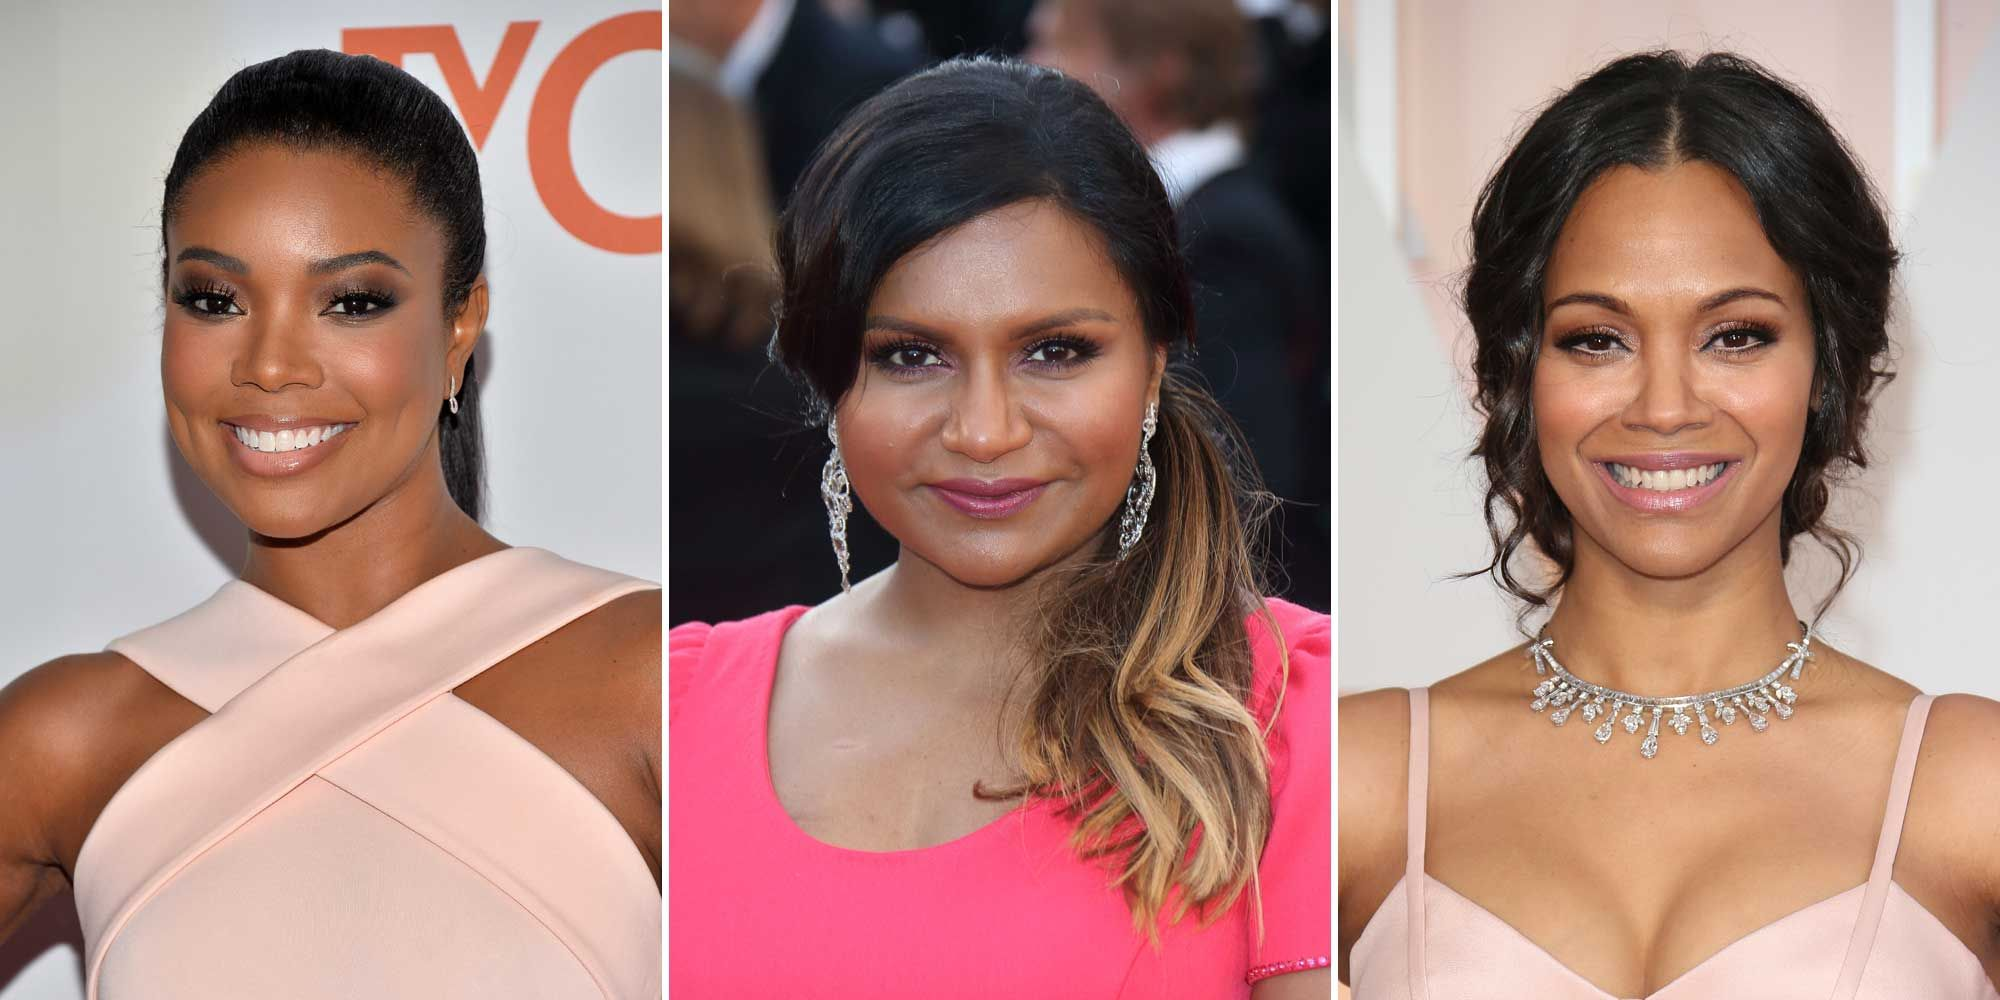 5 Ways To Get The Perfect Foundation Shade If You Have Dark Skin